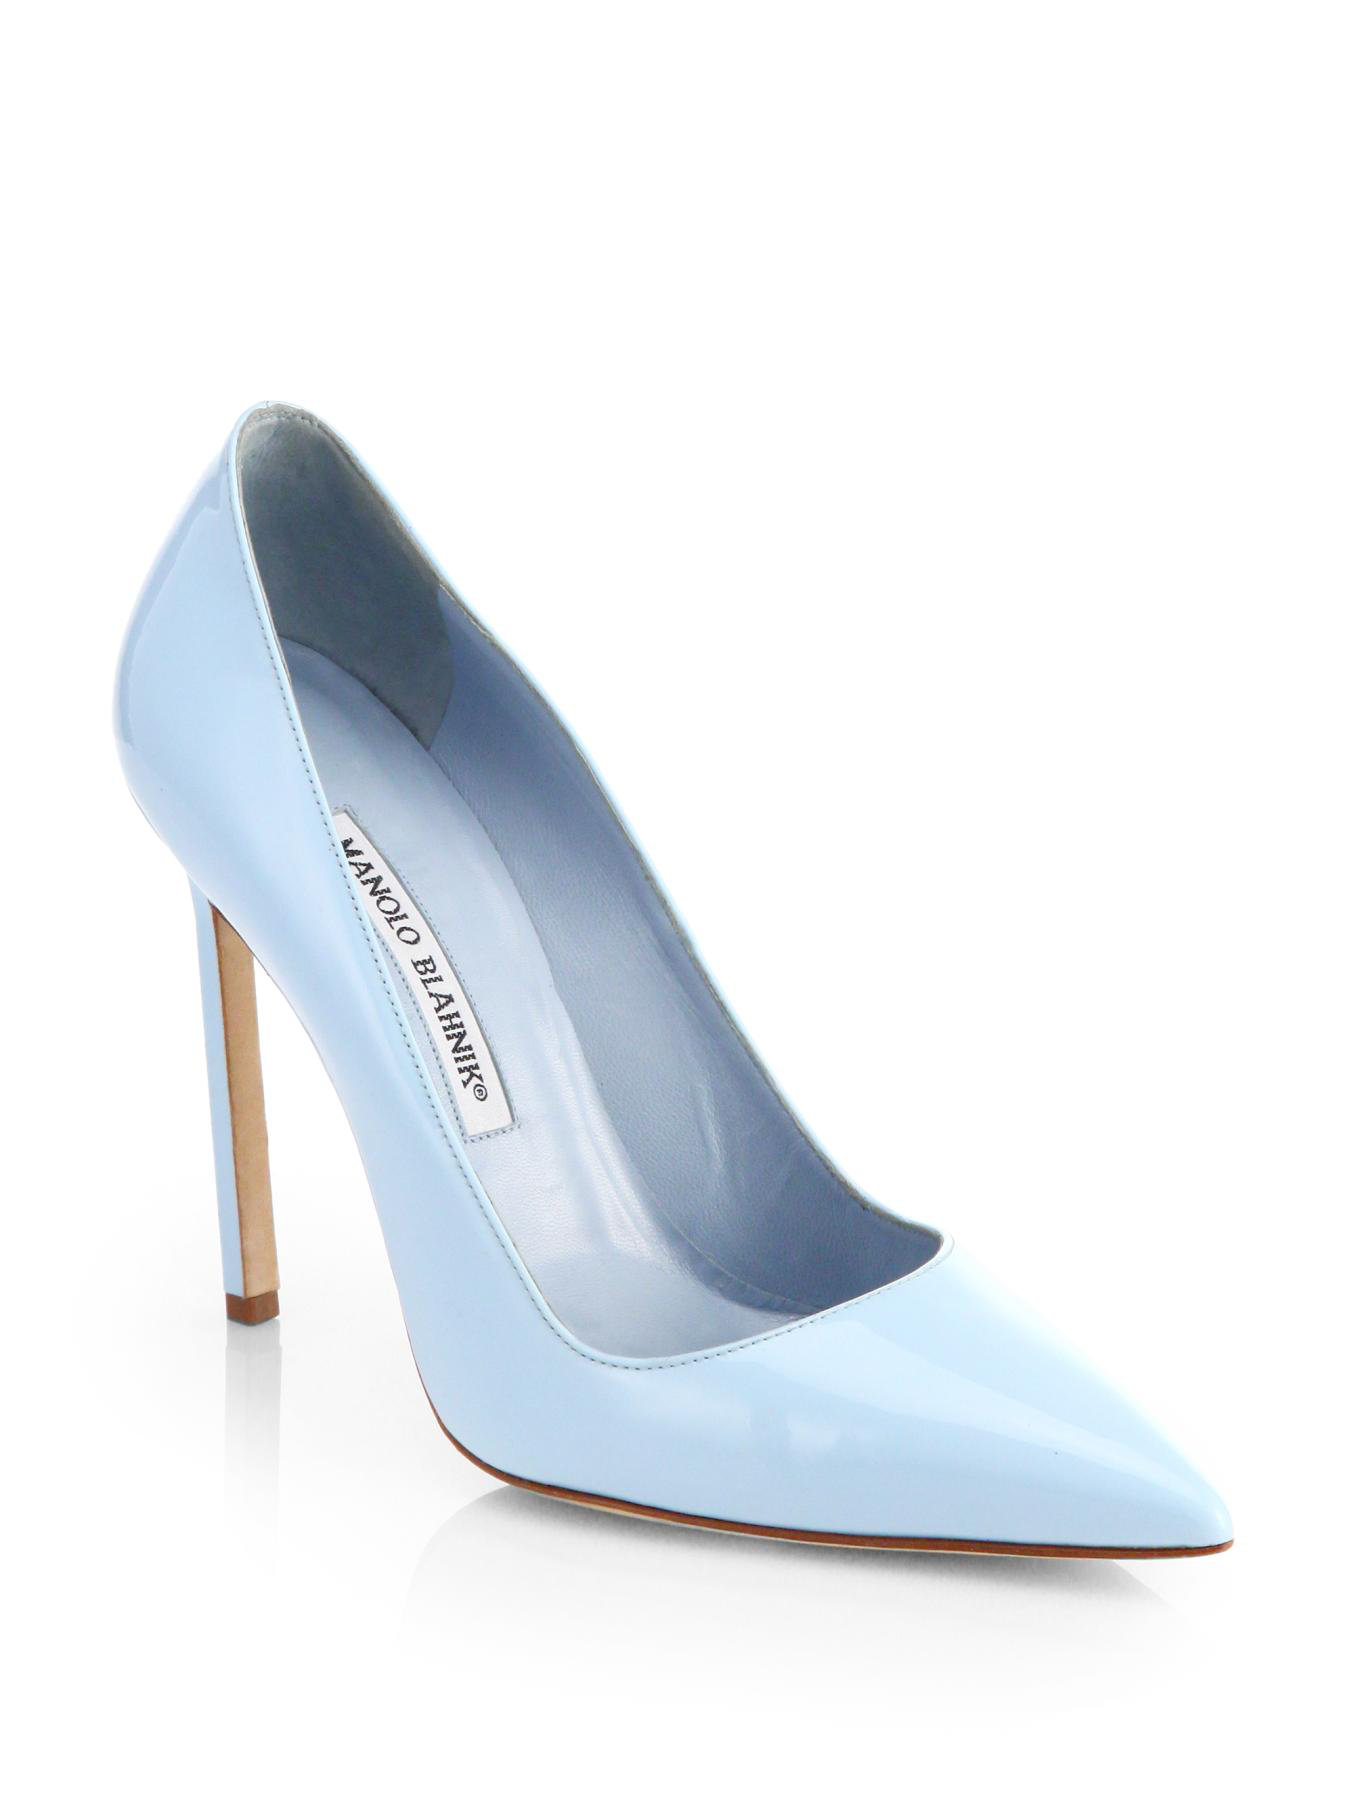 Lyst Manolo Blahnik Bb Patent Leather Pumps In Blue